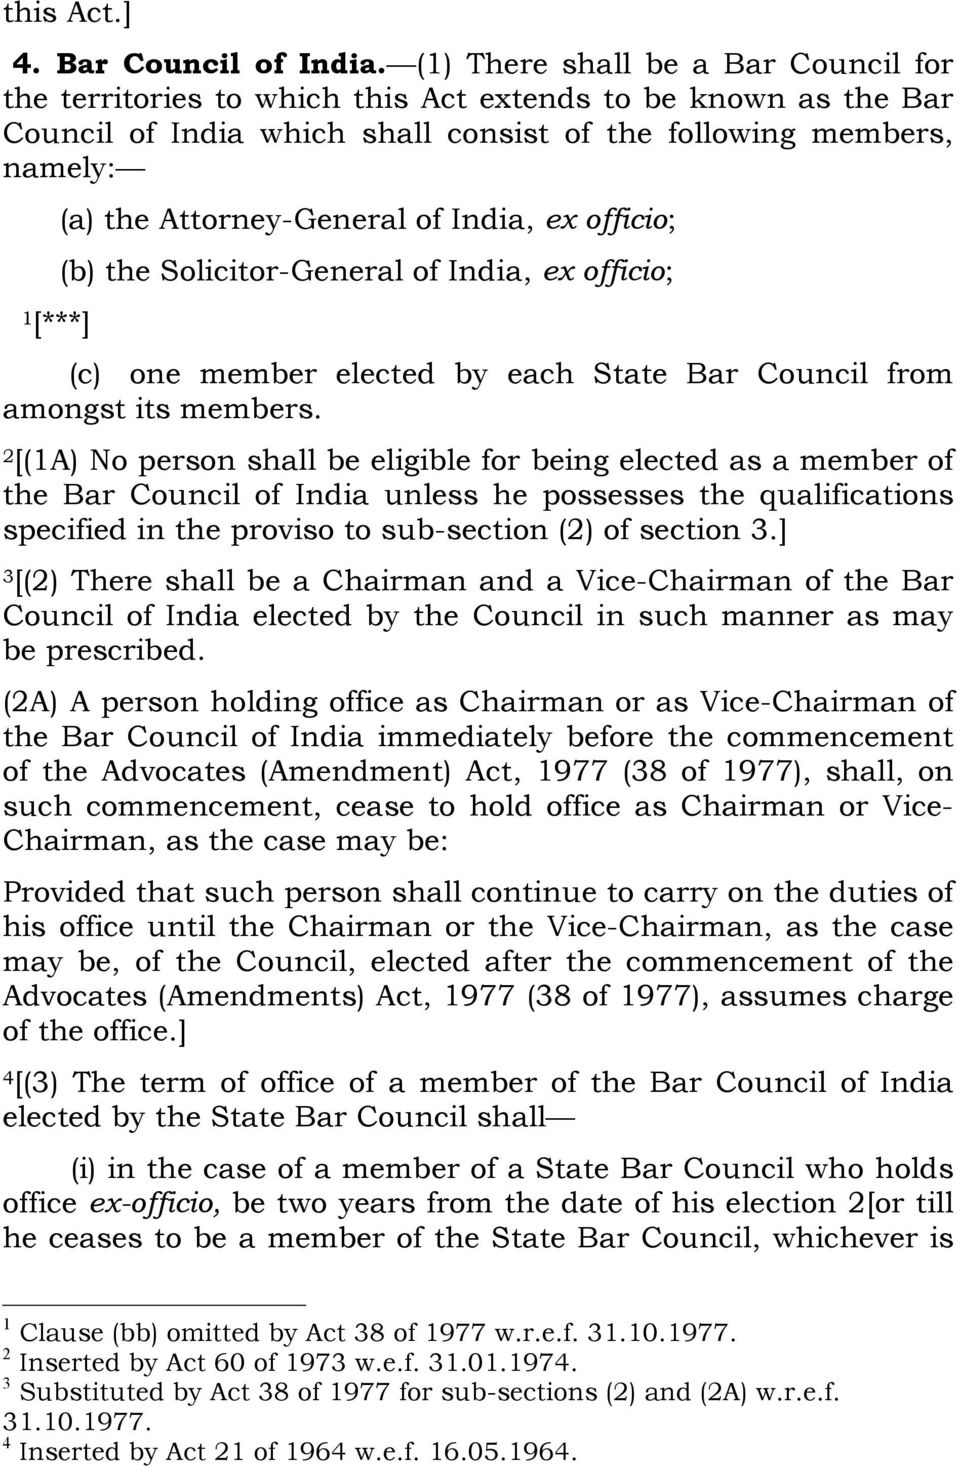 Attorney-General of India, ex officio; (b) the Solicitor-General of India, ex officio; (c) one member elected by each State Bar Council from amongst its members.